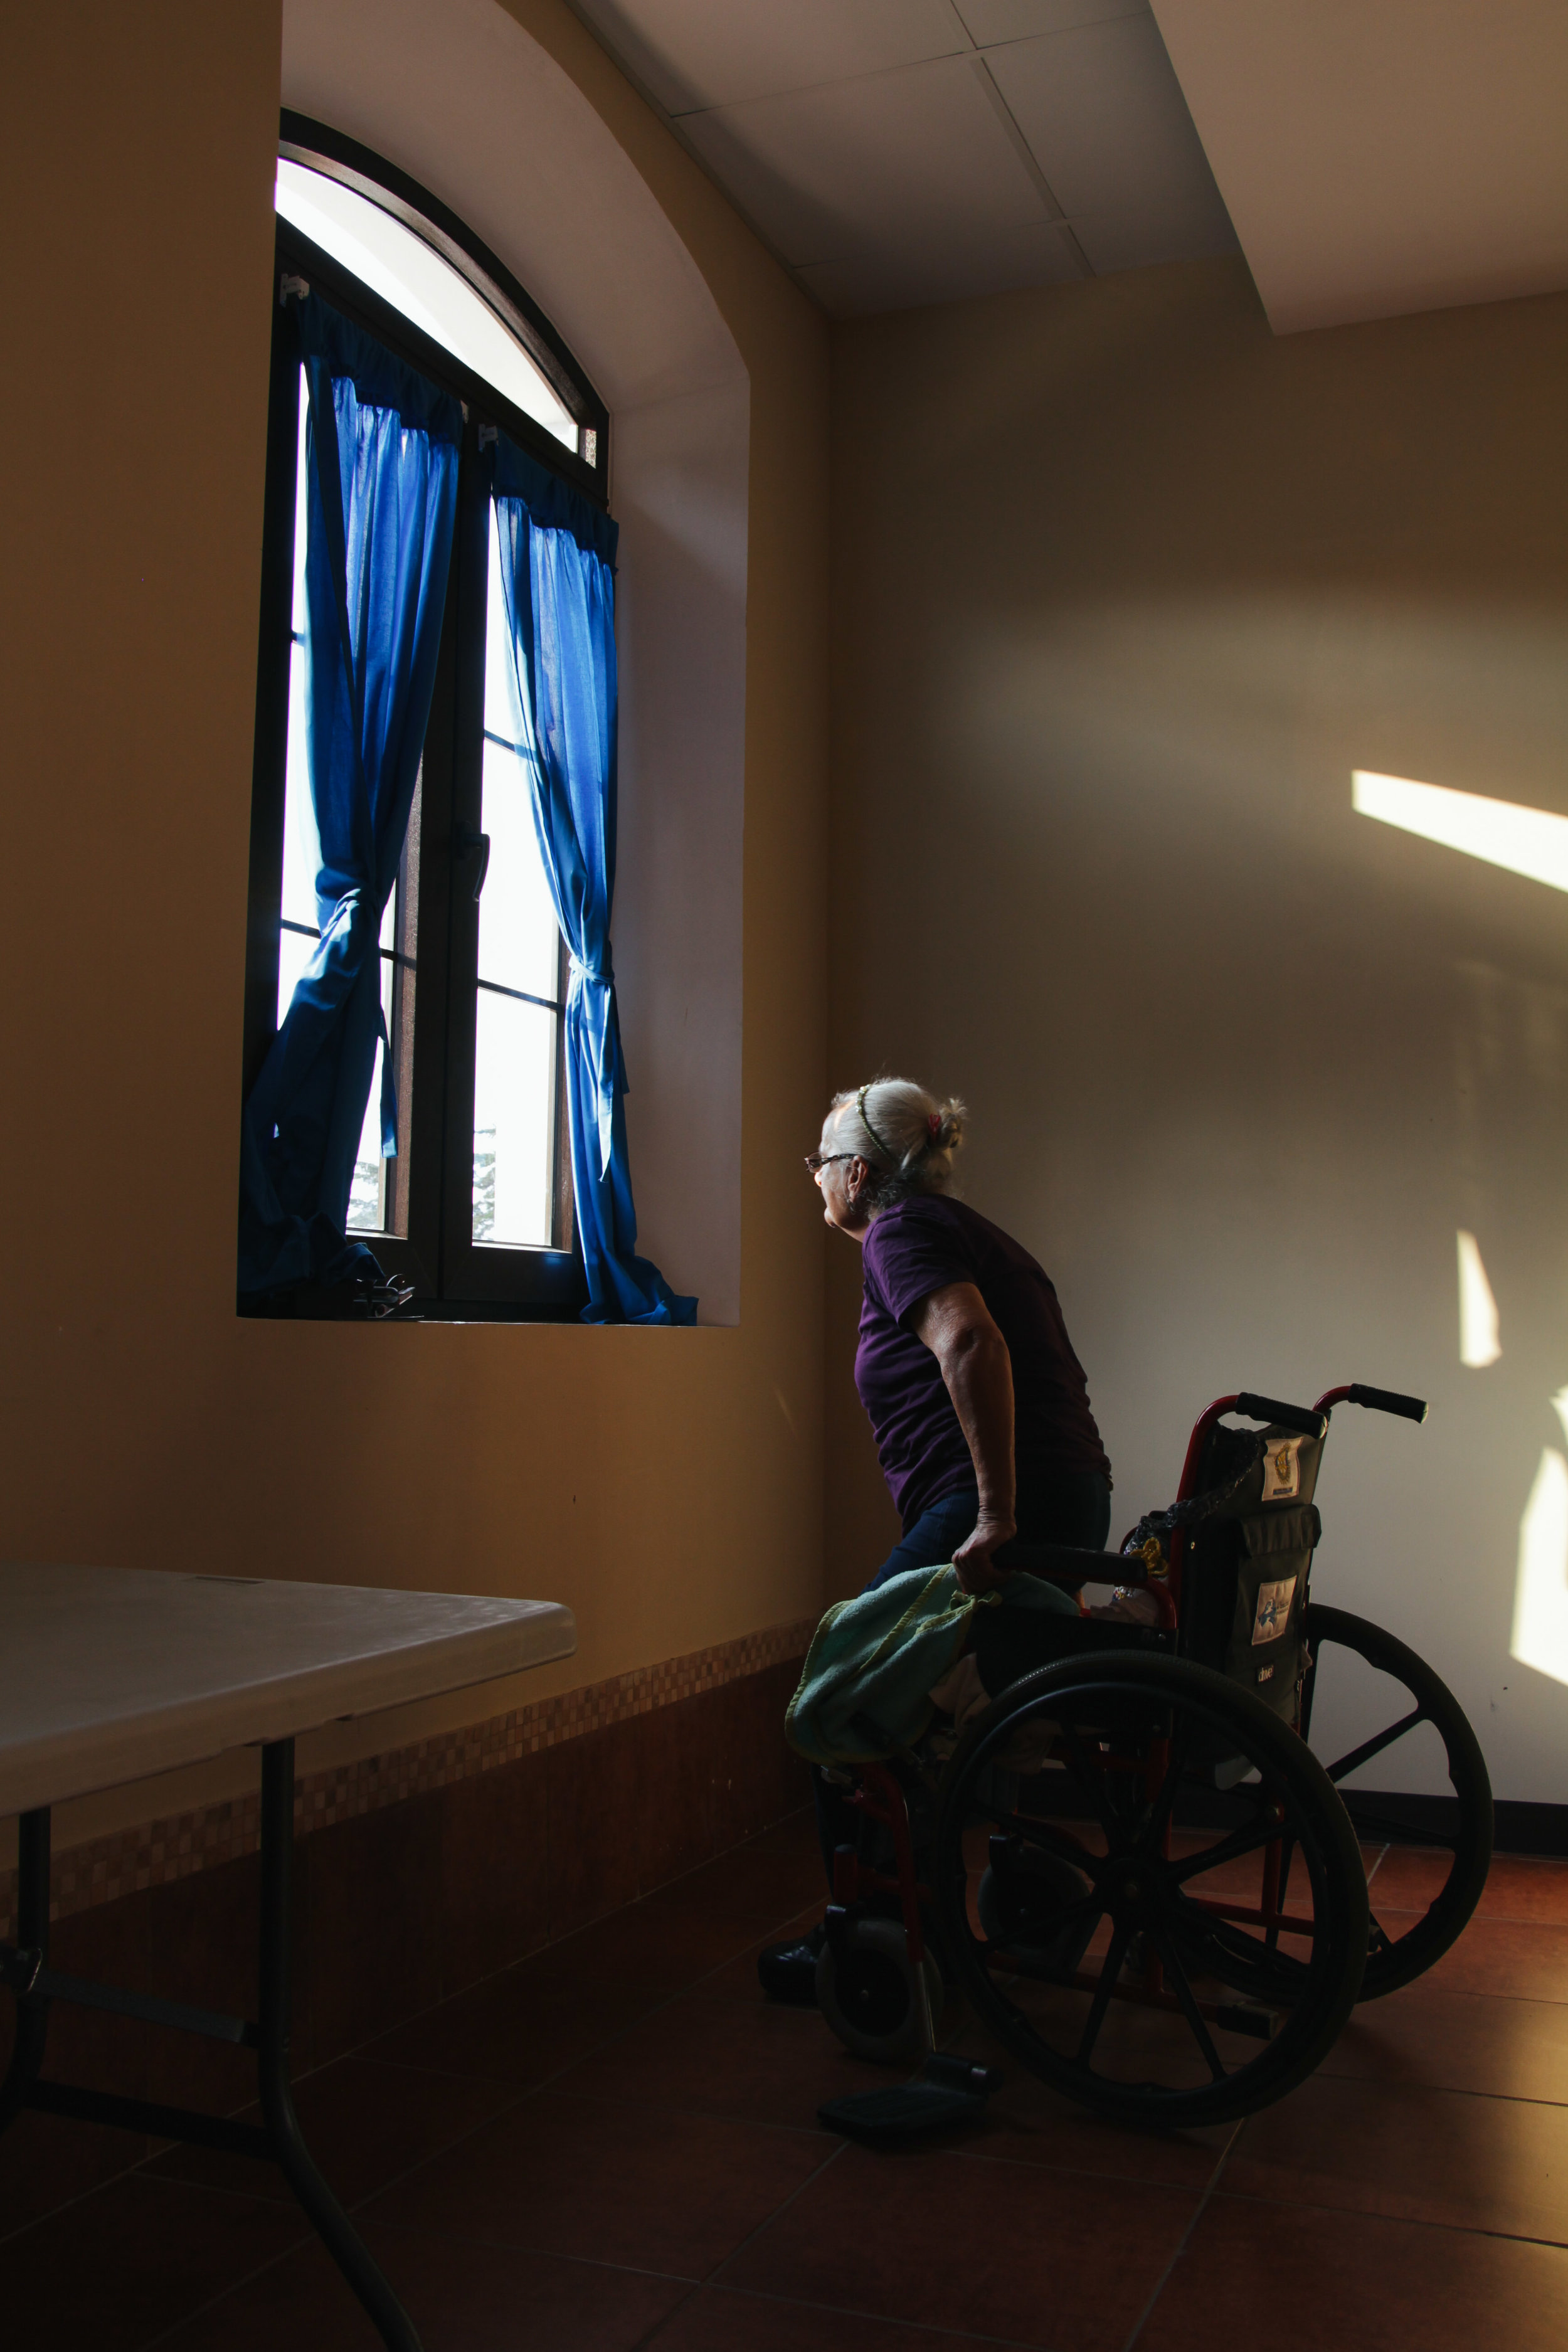 Photo by McKenzie Van Loh GLADYS SEGURA, 75, LIFTS HERSELF OUT OF HER WHEELCHAIR TO TAKE A LOOK OUT THE WINDOW AT VIRGEN DEL SOCORRO IN ANTIGUA GUATEMALA JAN. 17. VIRGEN DEL SOCCORRO'S NEW BUILDING IS SURROUNDED BY VOLCANOES